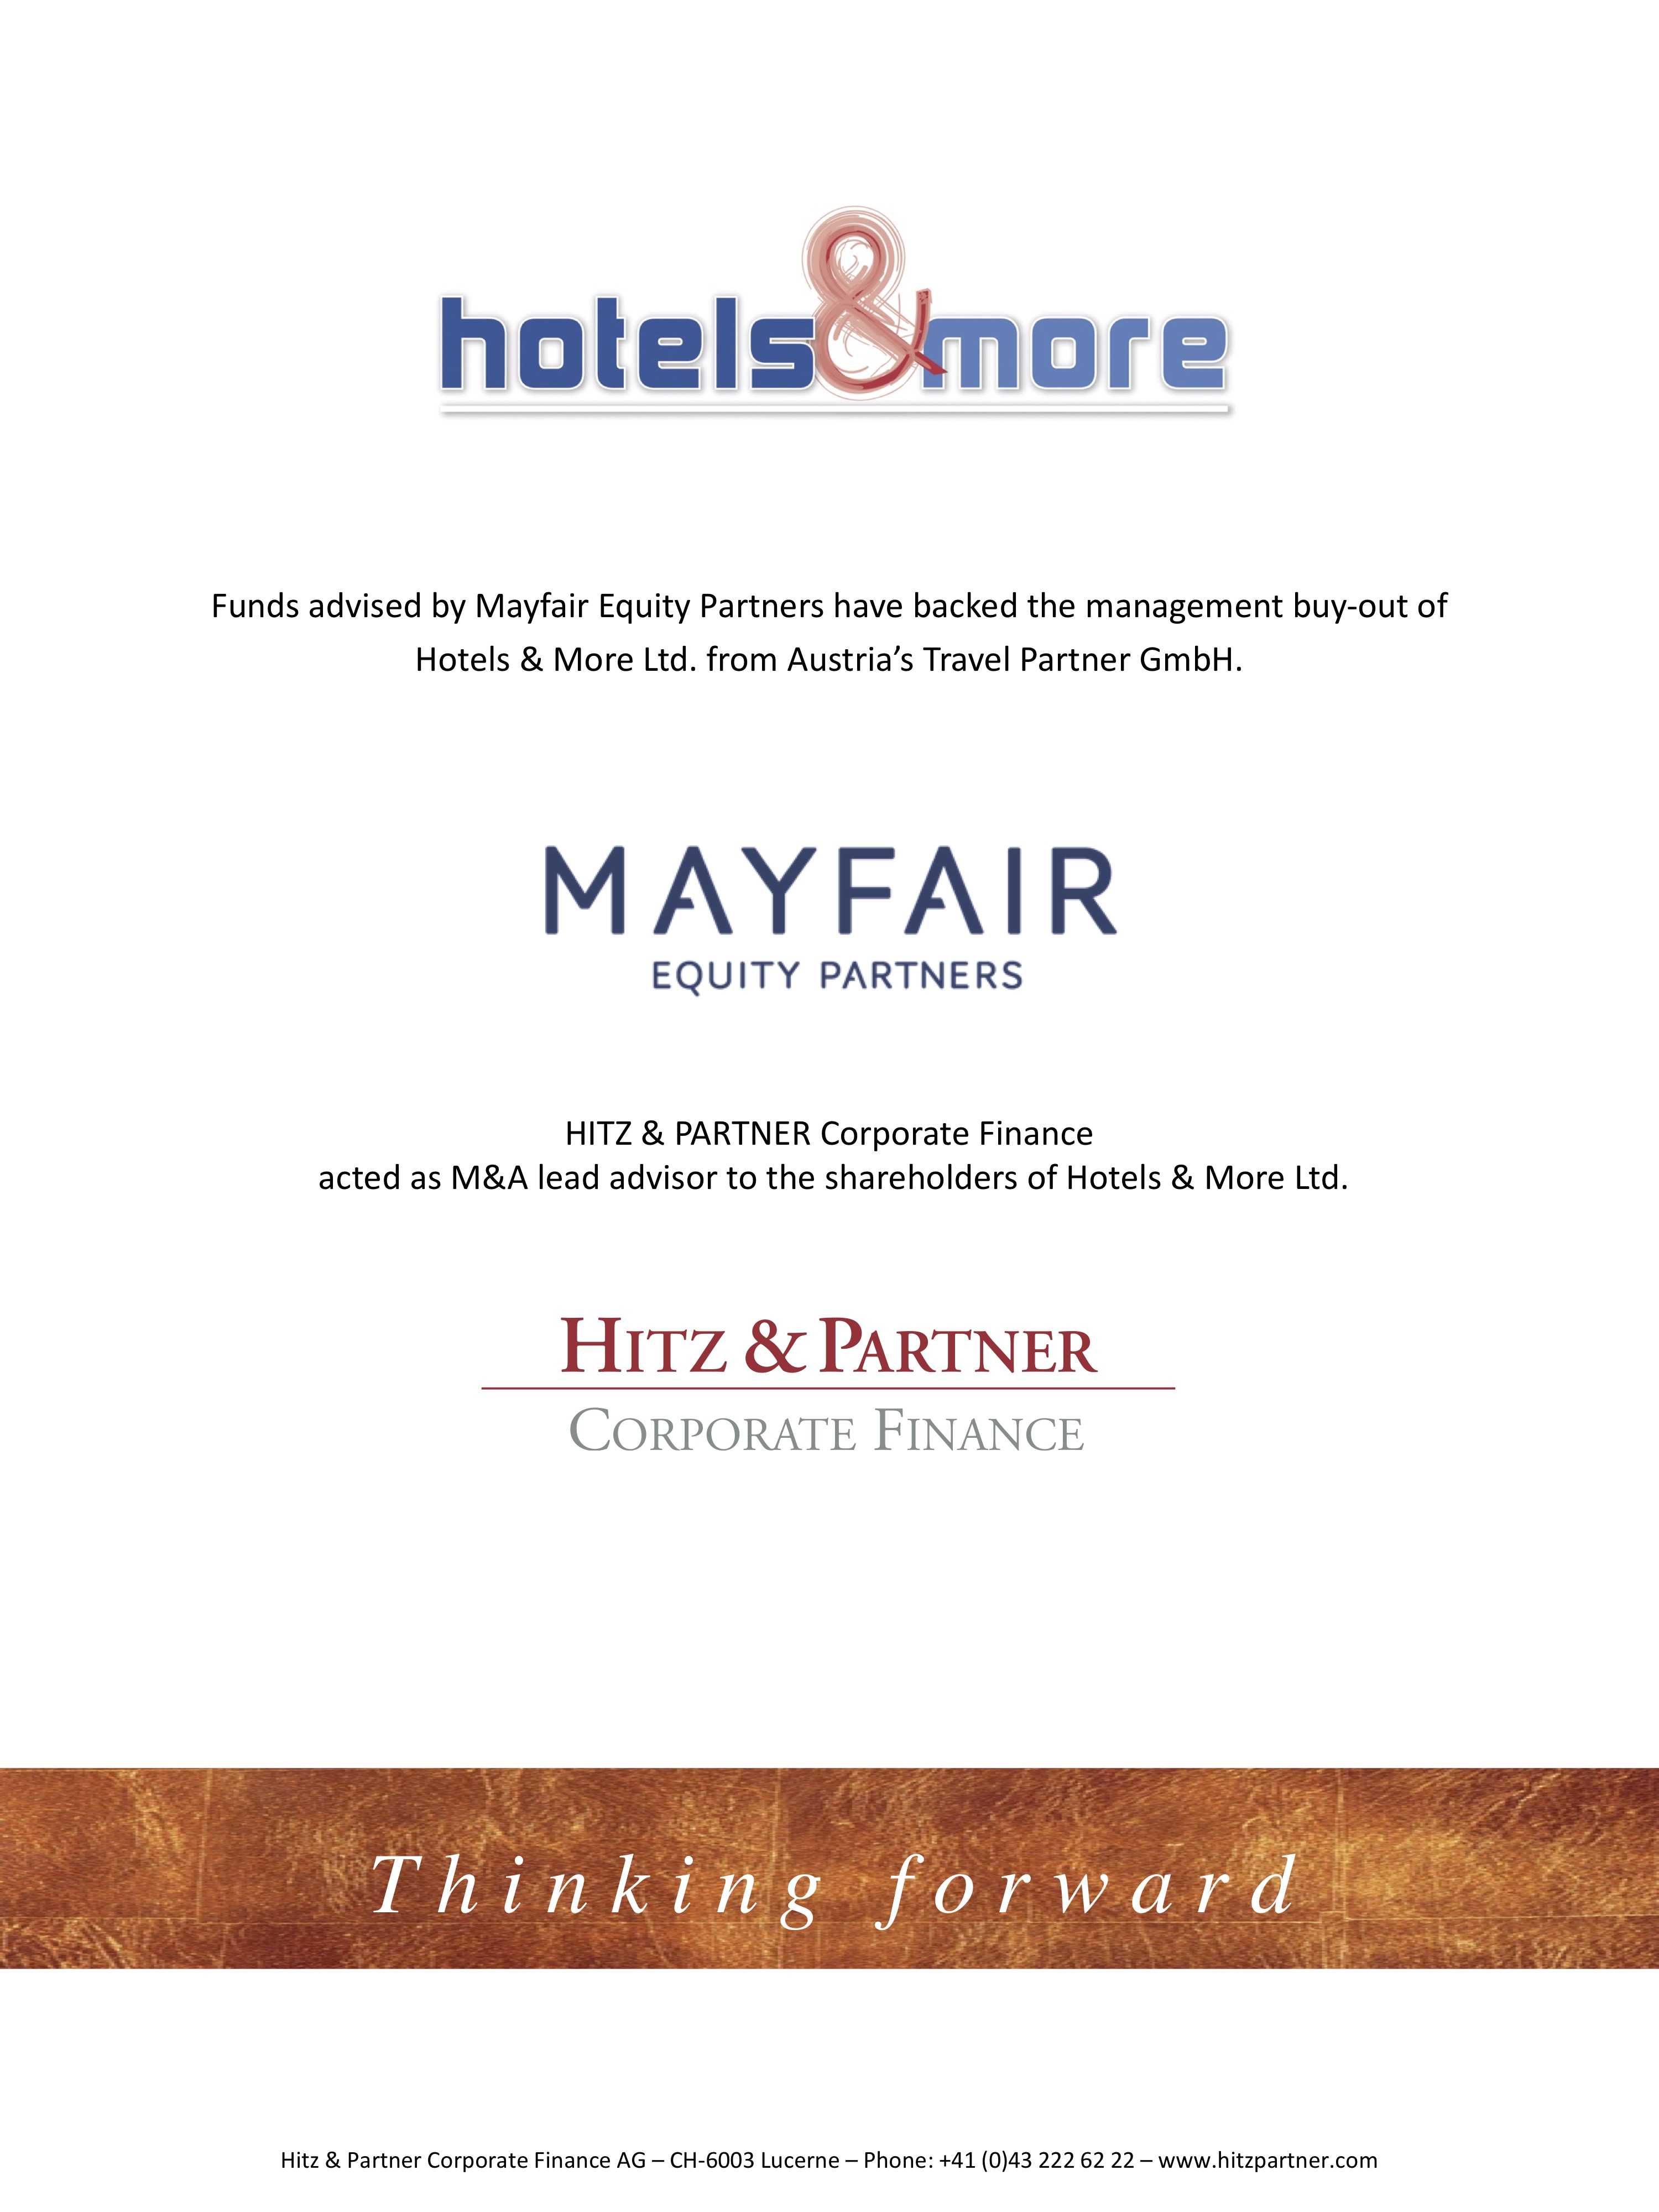 Mayfair checks-in to Hotels & More buy-out